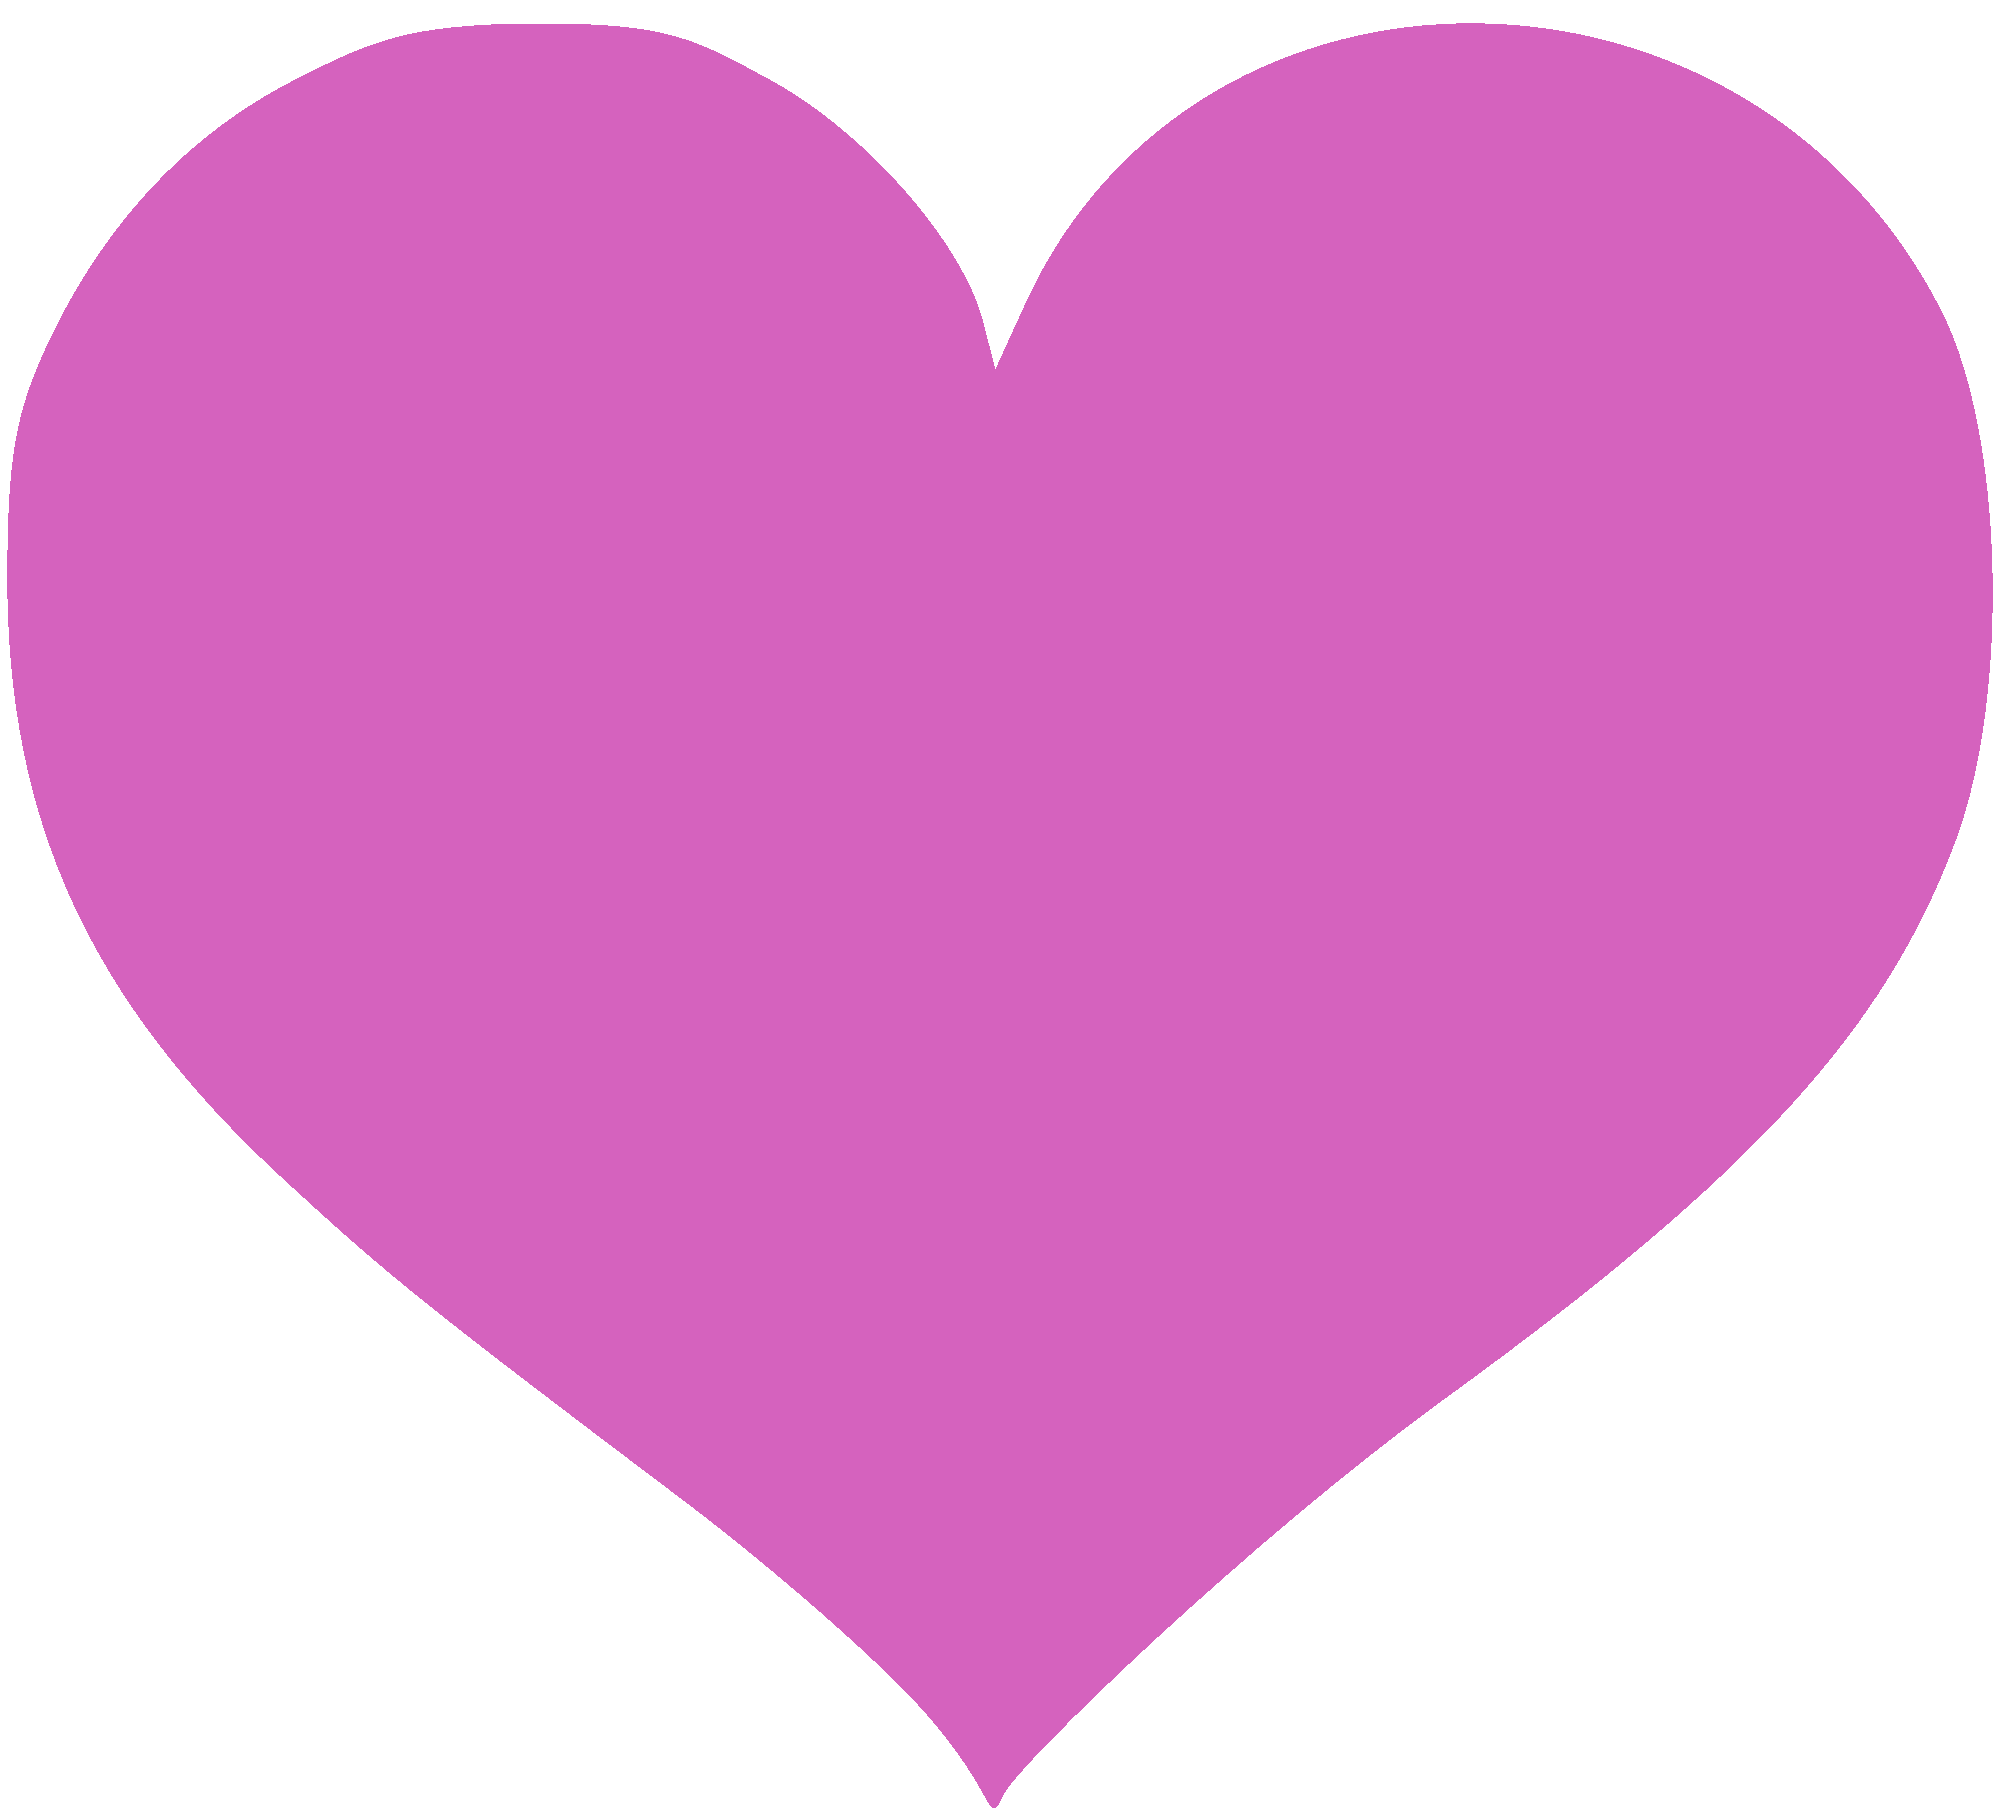 Pose heartpng. Heart png image